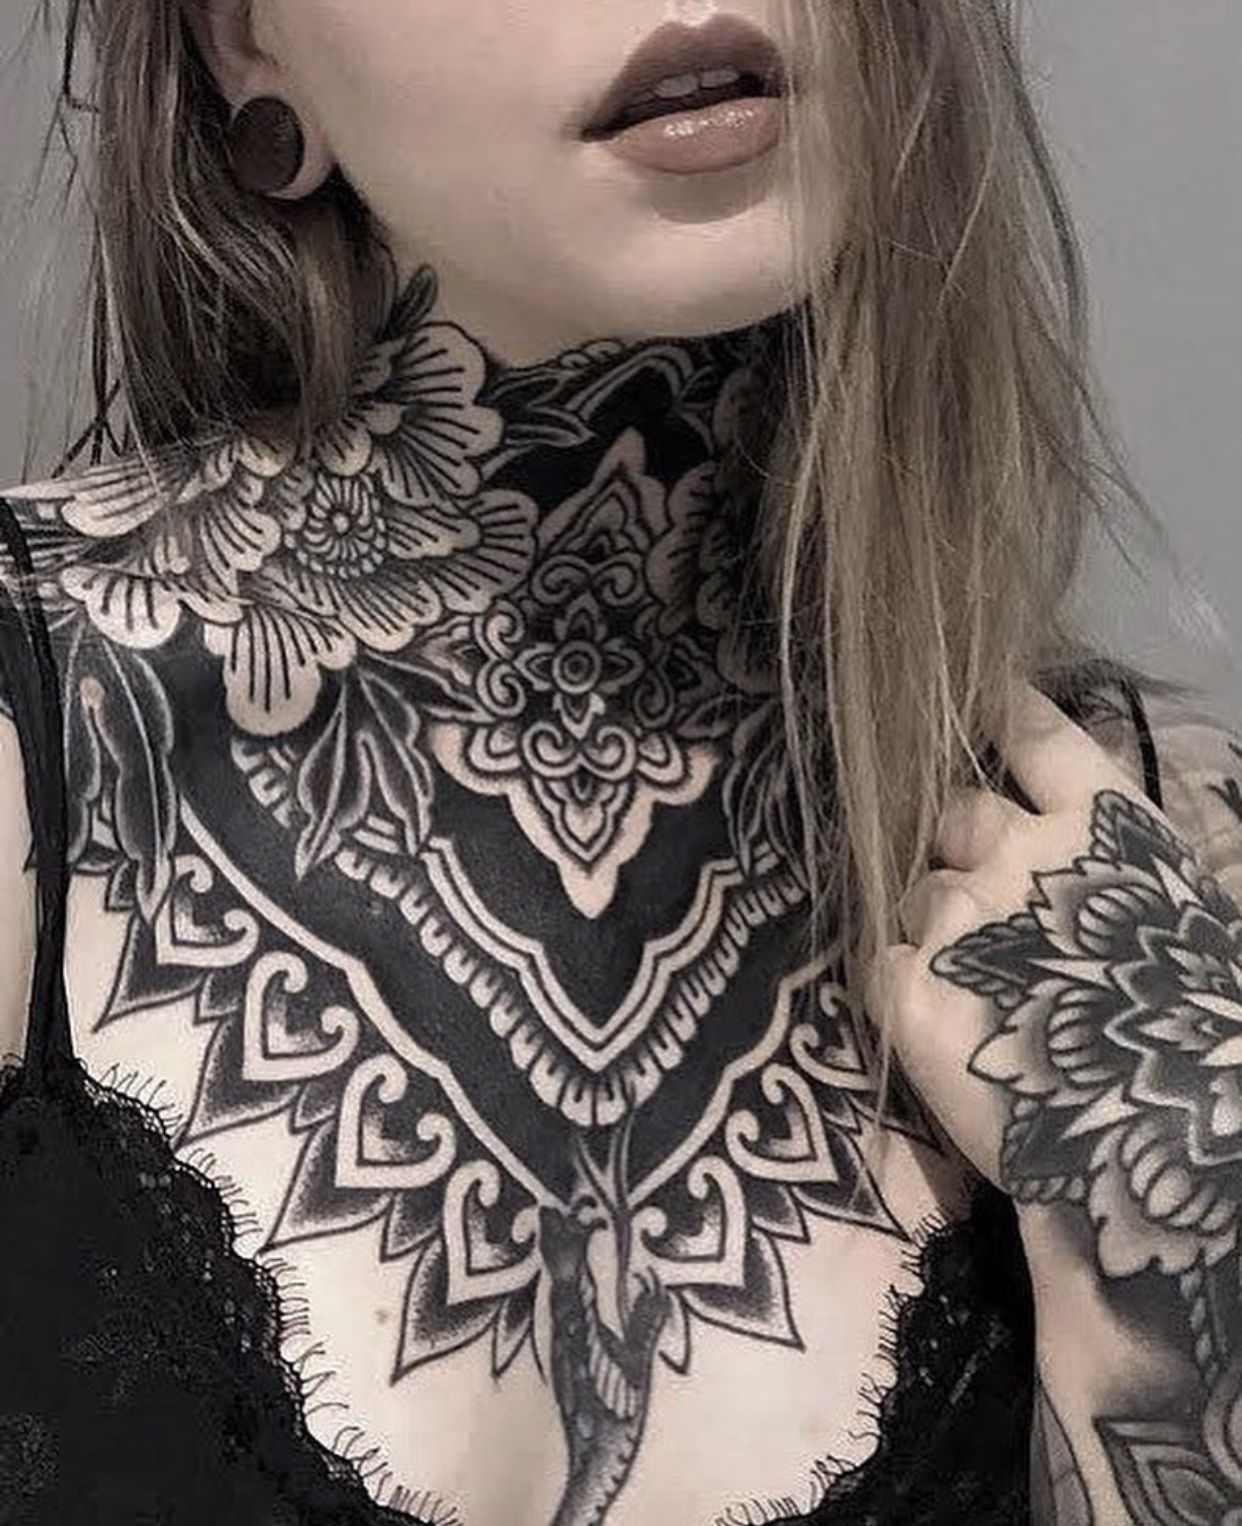 Pin by Ash VanWey on My Style in 2020 | Neck tattoos women, Chest piece tattoos, Throat tattoo